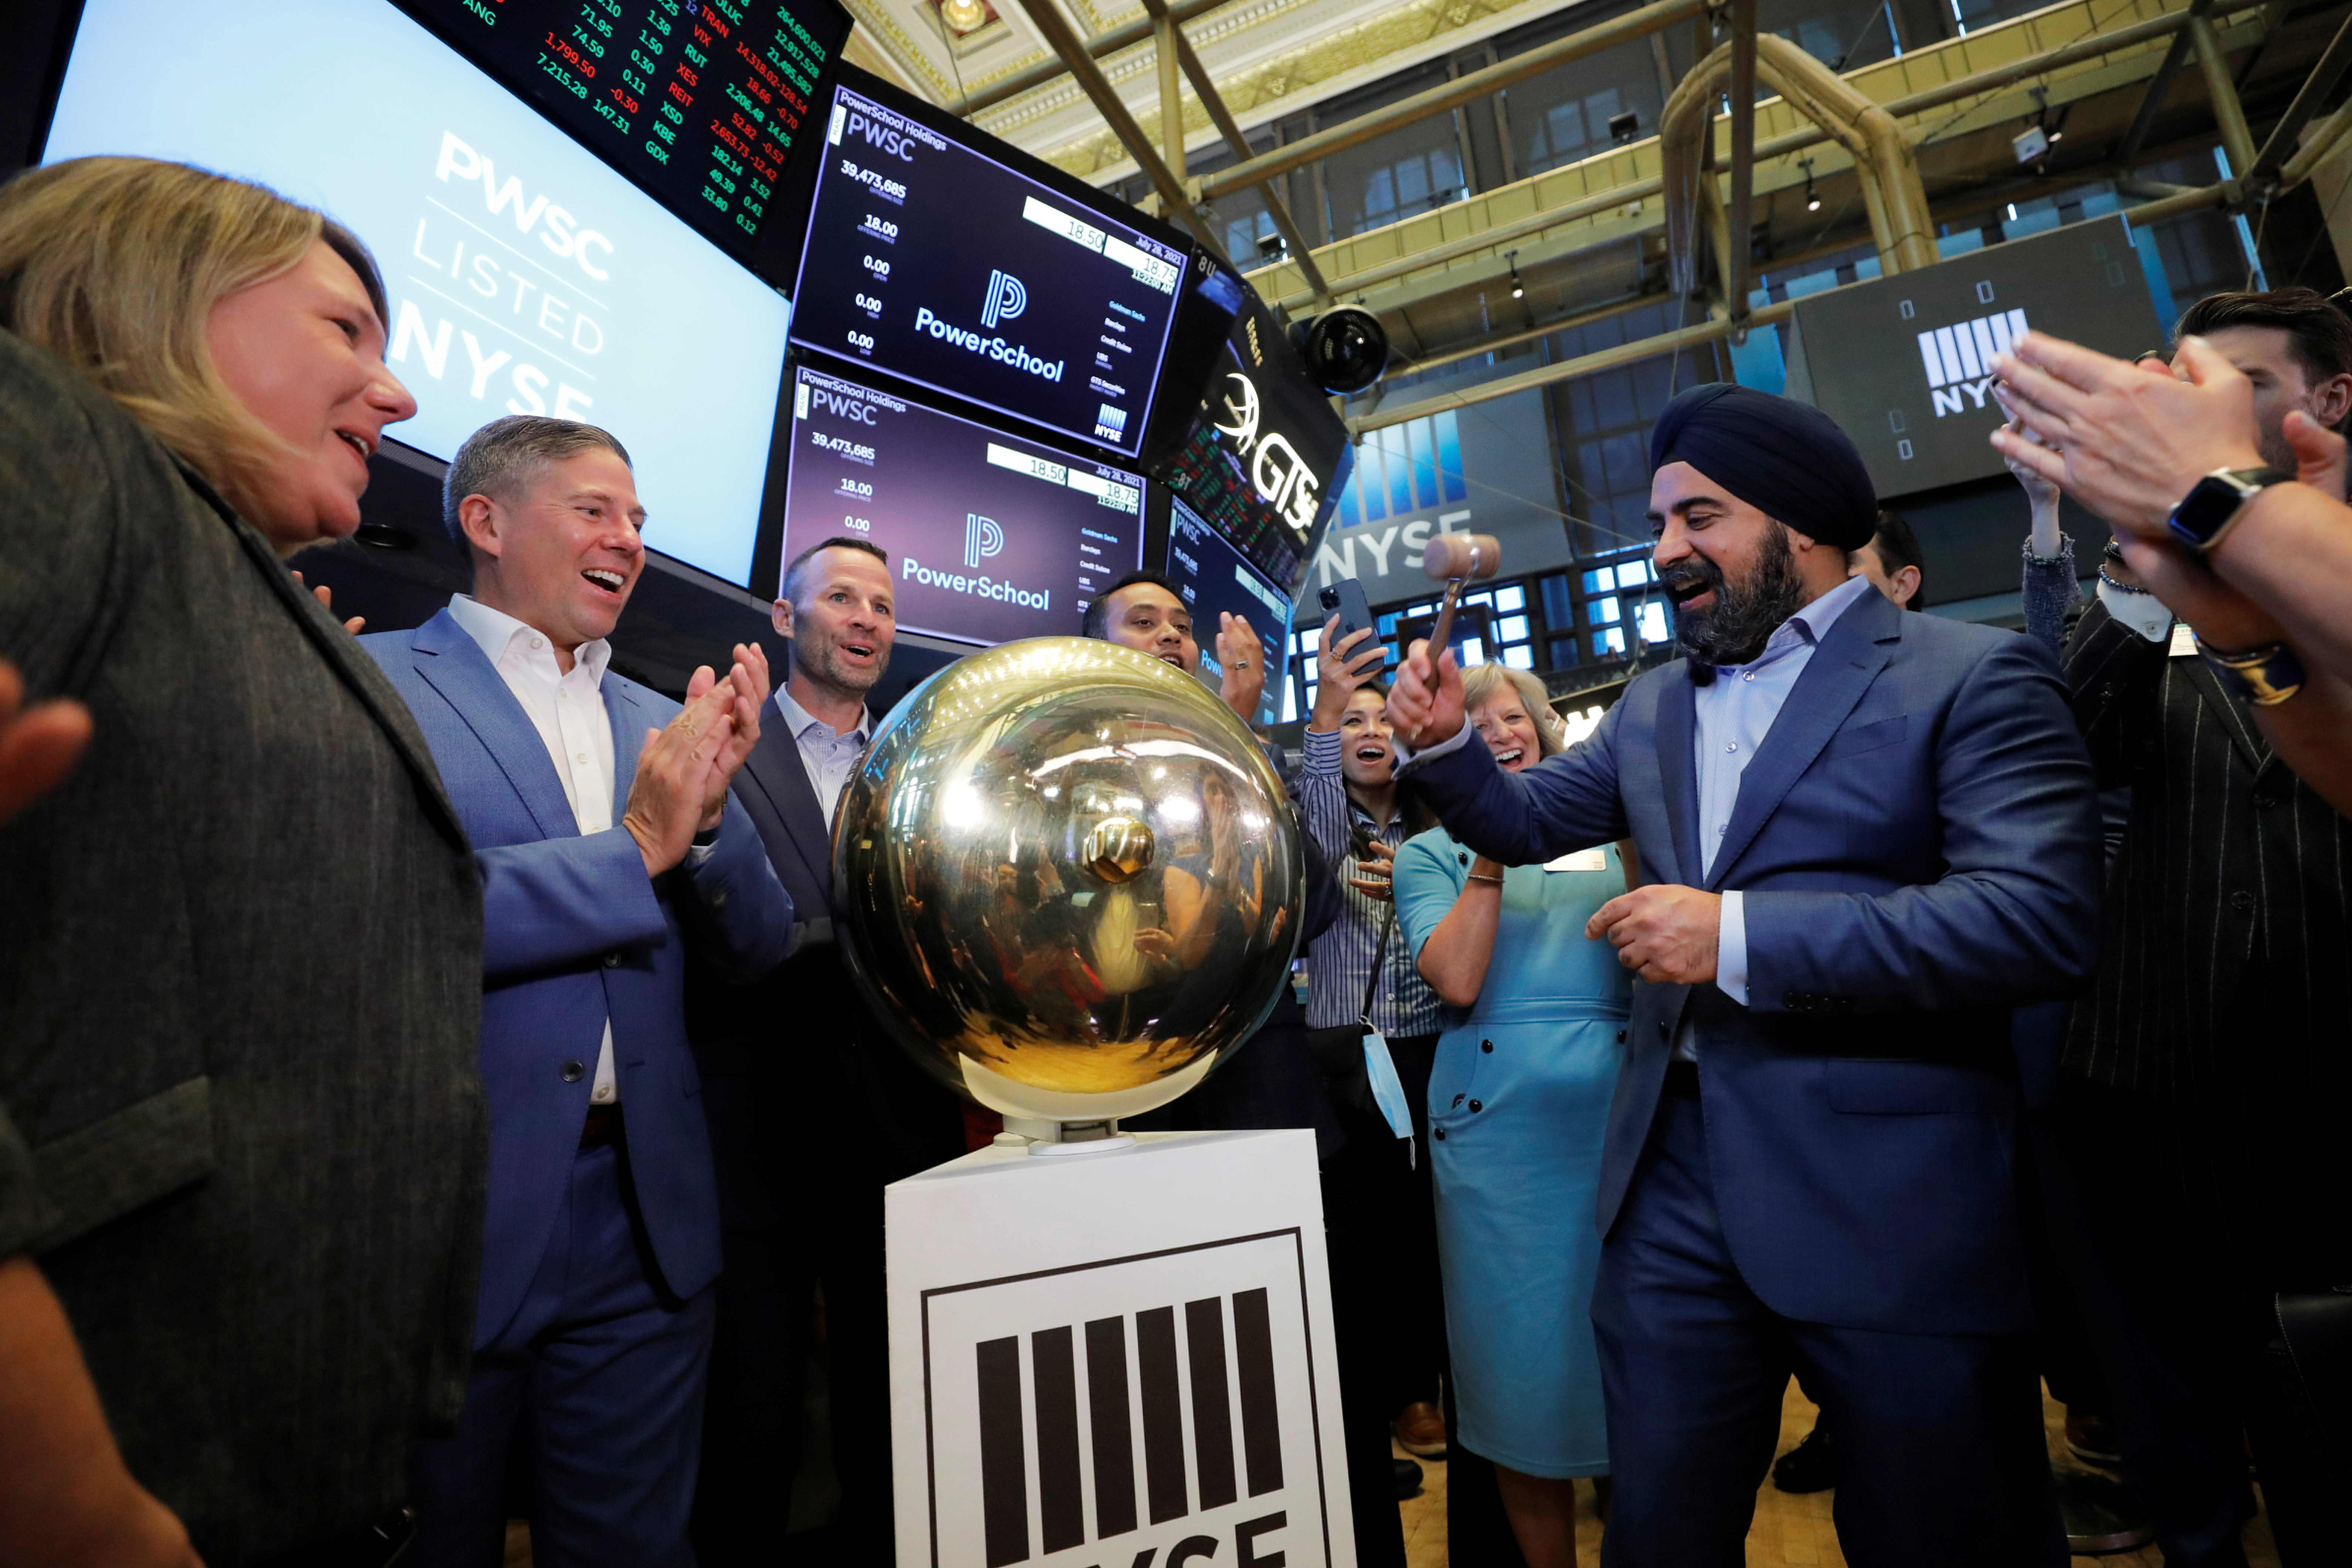 PowerSchool CEO Hardeep Gulati rings a ceremonial bell during their Initial public offering (IPO) the New York Stock Exchange (NYSE) in New York City, New York, U.S., July 28, 2021. REUTERS/Andrew Kelly